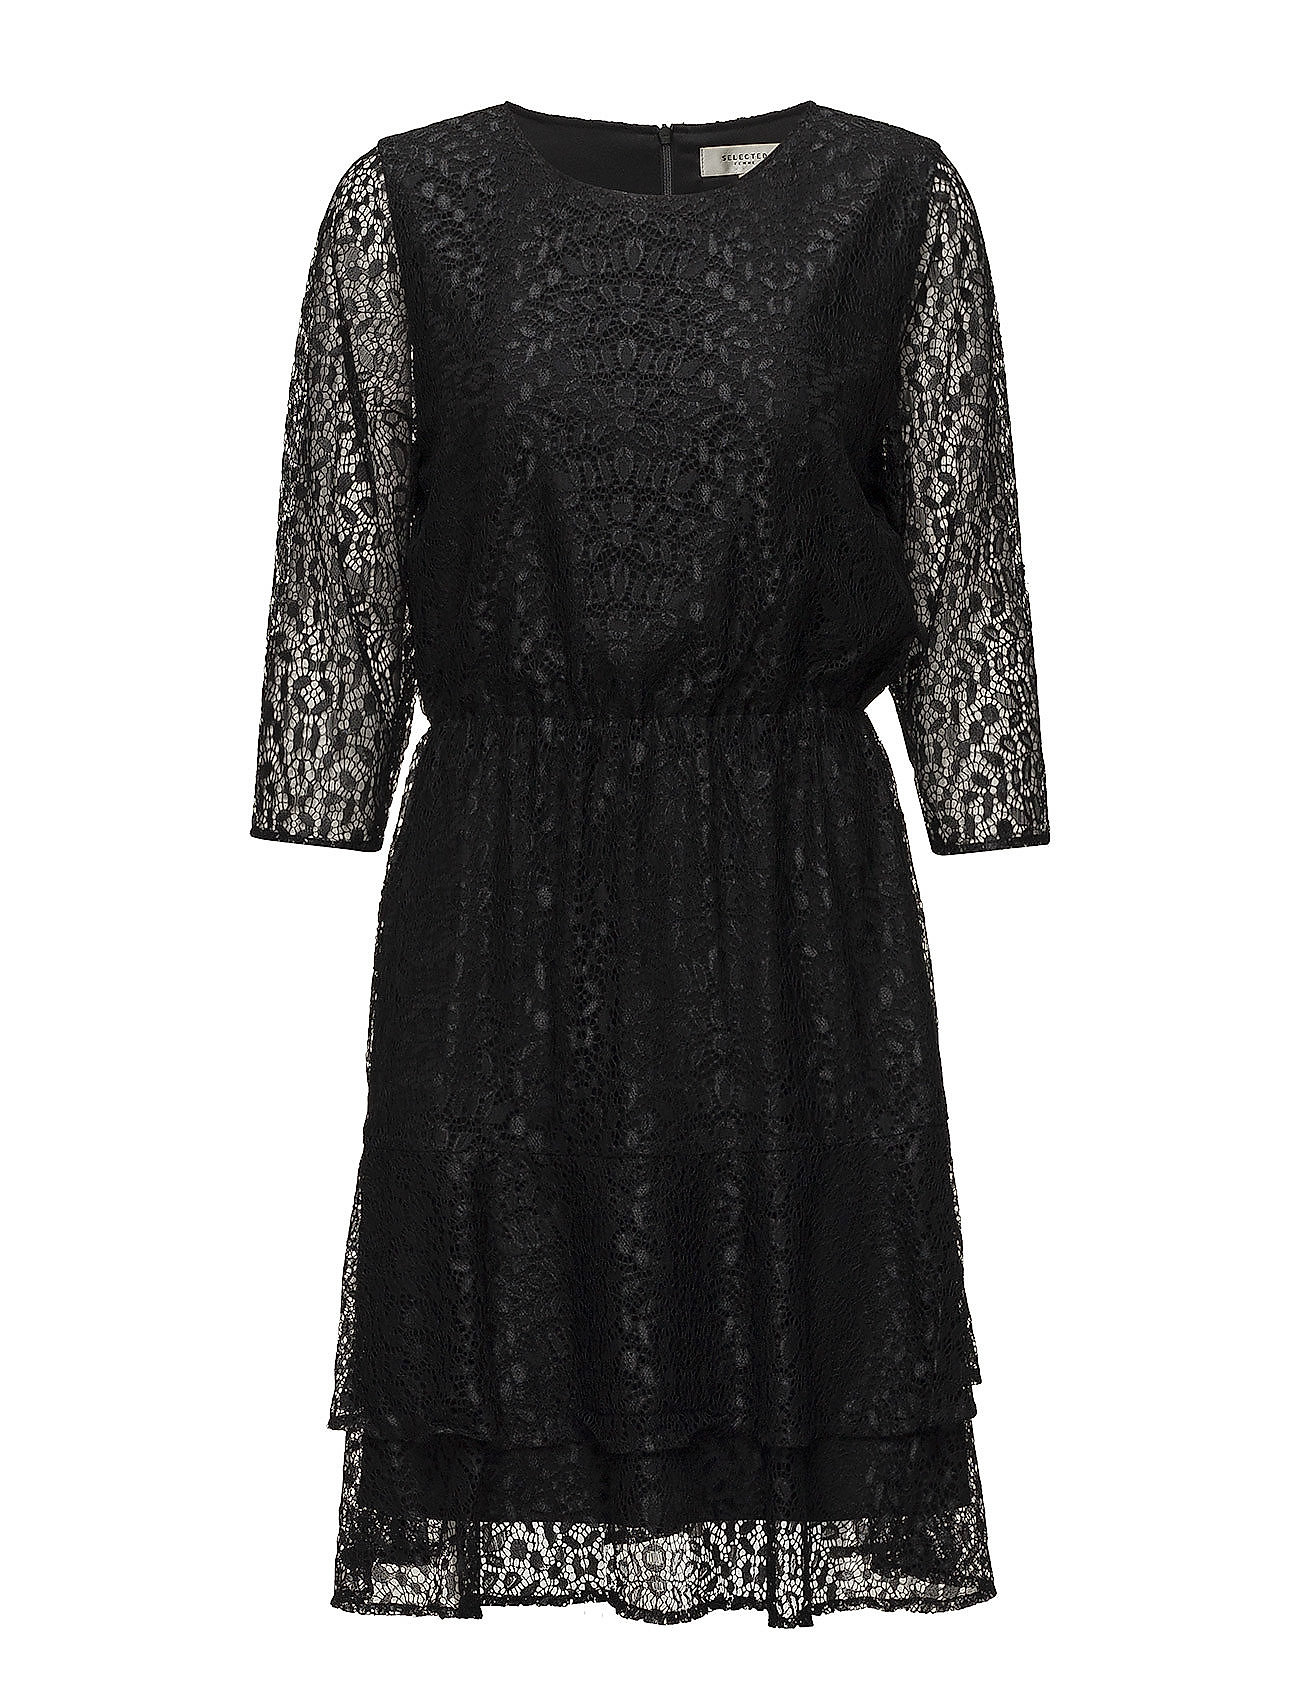 Selected Femme SFMARCIA 3/4 LACE DRESS - BLACK